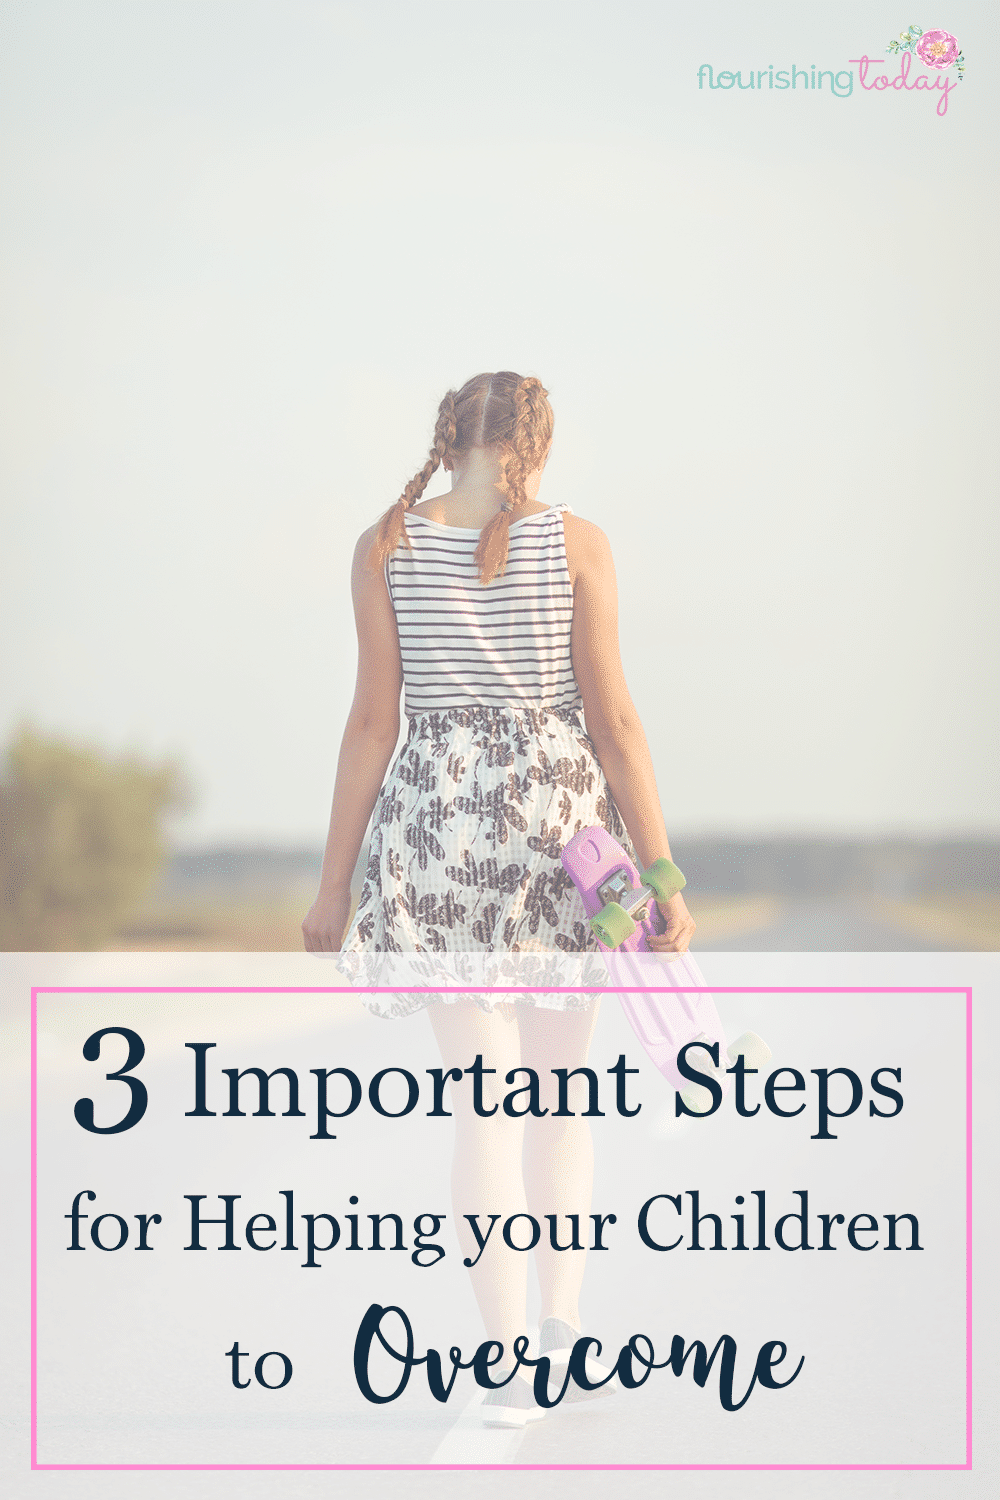 Our children are exposed to so much in life. To help them navigate the insecurities of a broken world, here are 3 Steps to Help them Overcome Offenses.